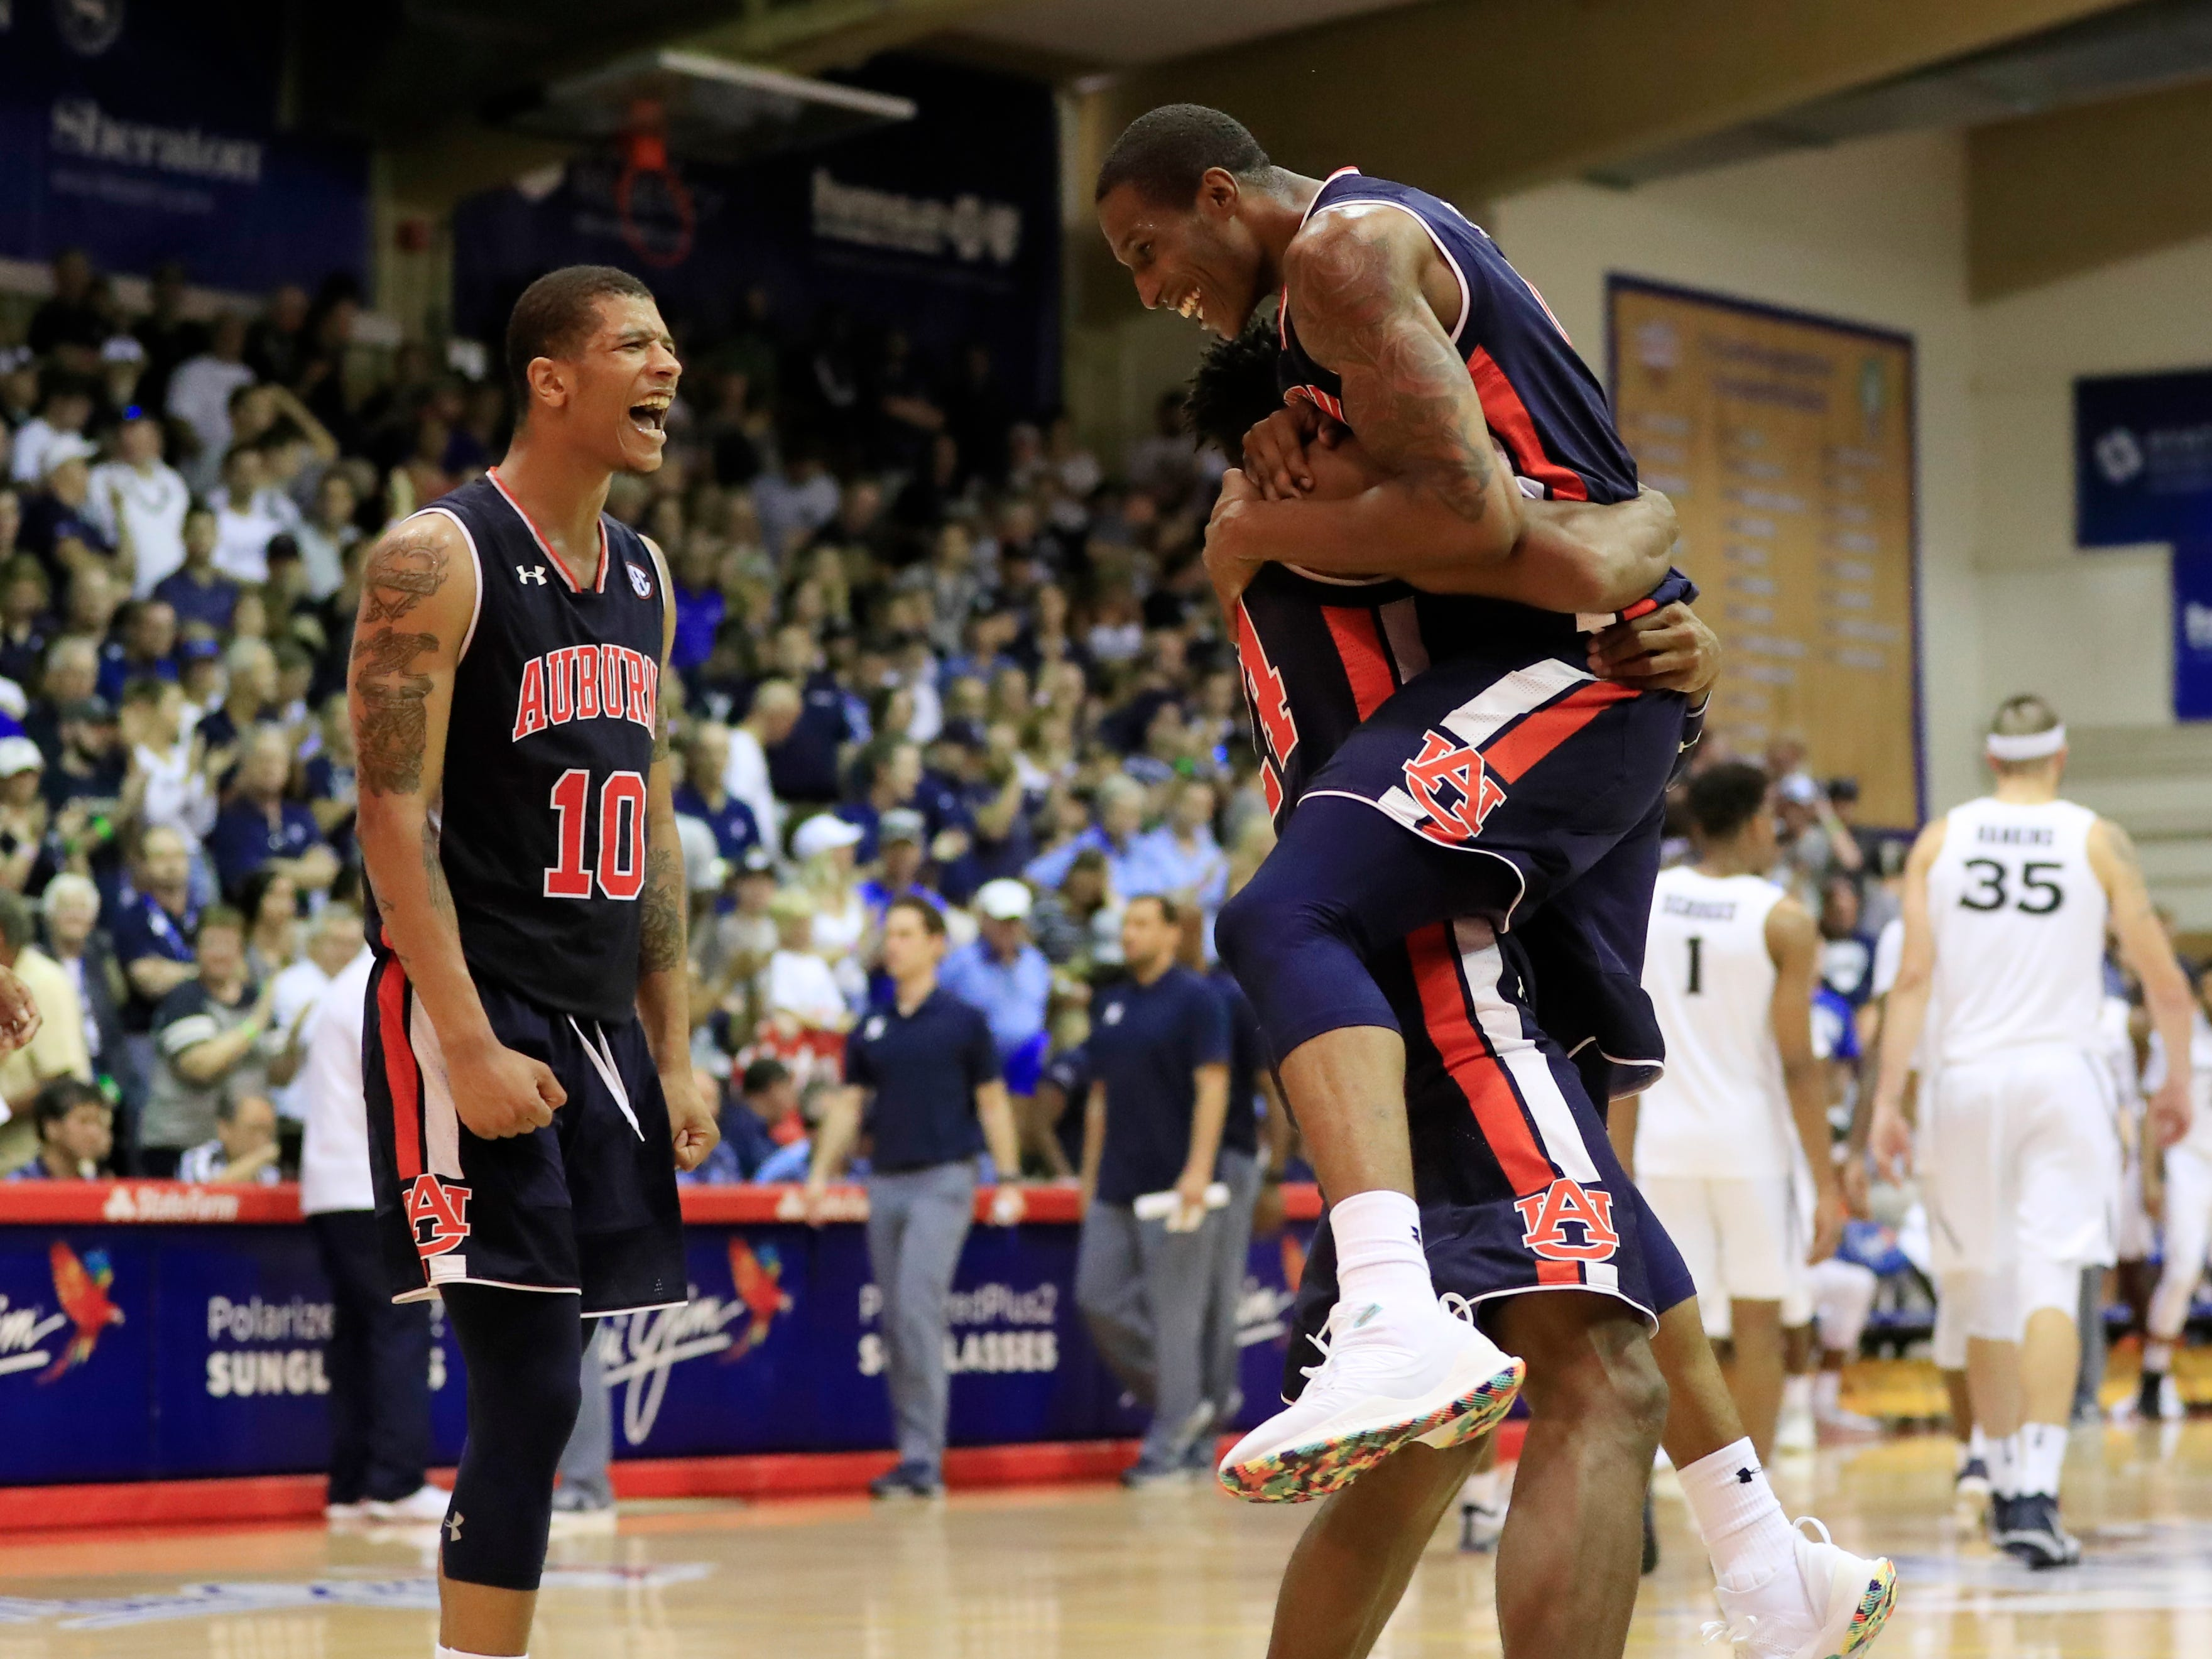 Auburn guard Samir Doughty (10), left, forward Anfernee McLemore (24) and forward Horace Spencer (0) celebrate after defeating Xavier 88-79 in overtime at the Maui Invitational, Monday, Nov. 19, 2018